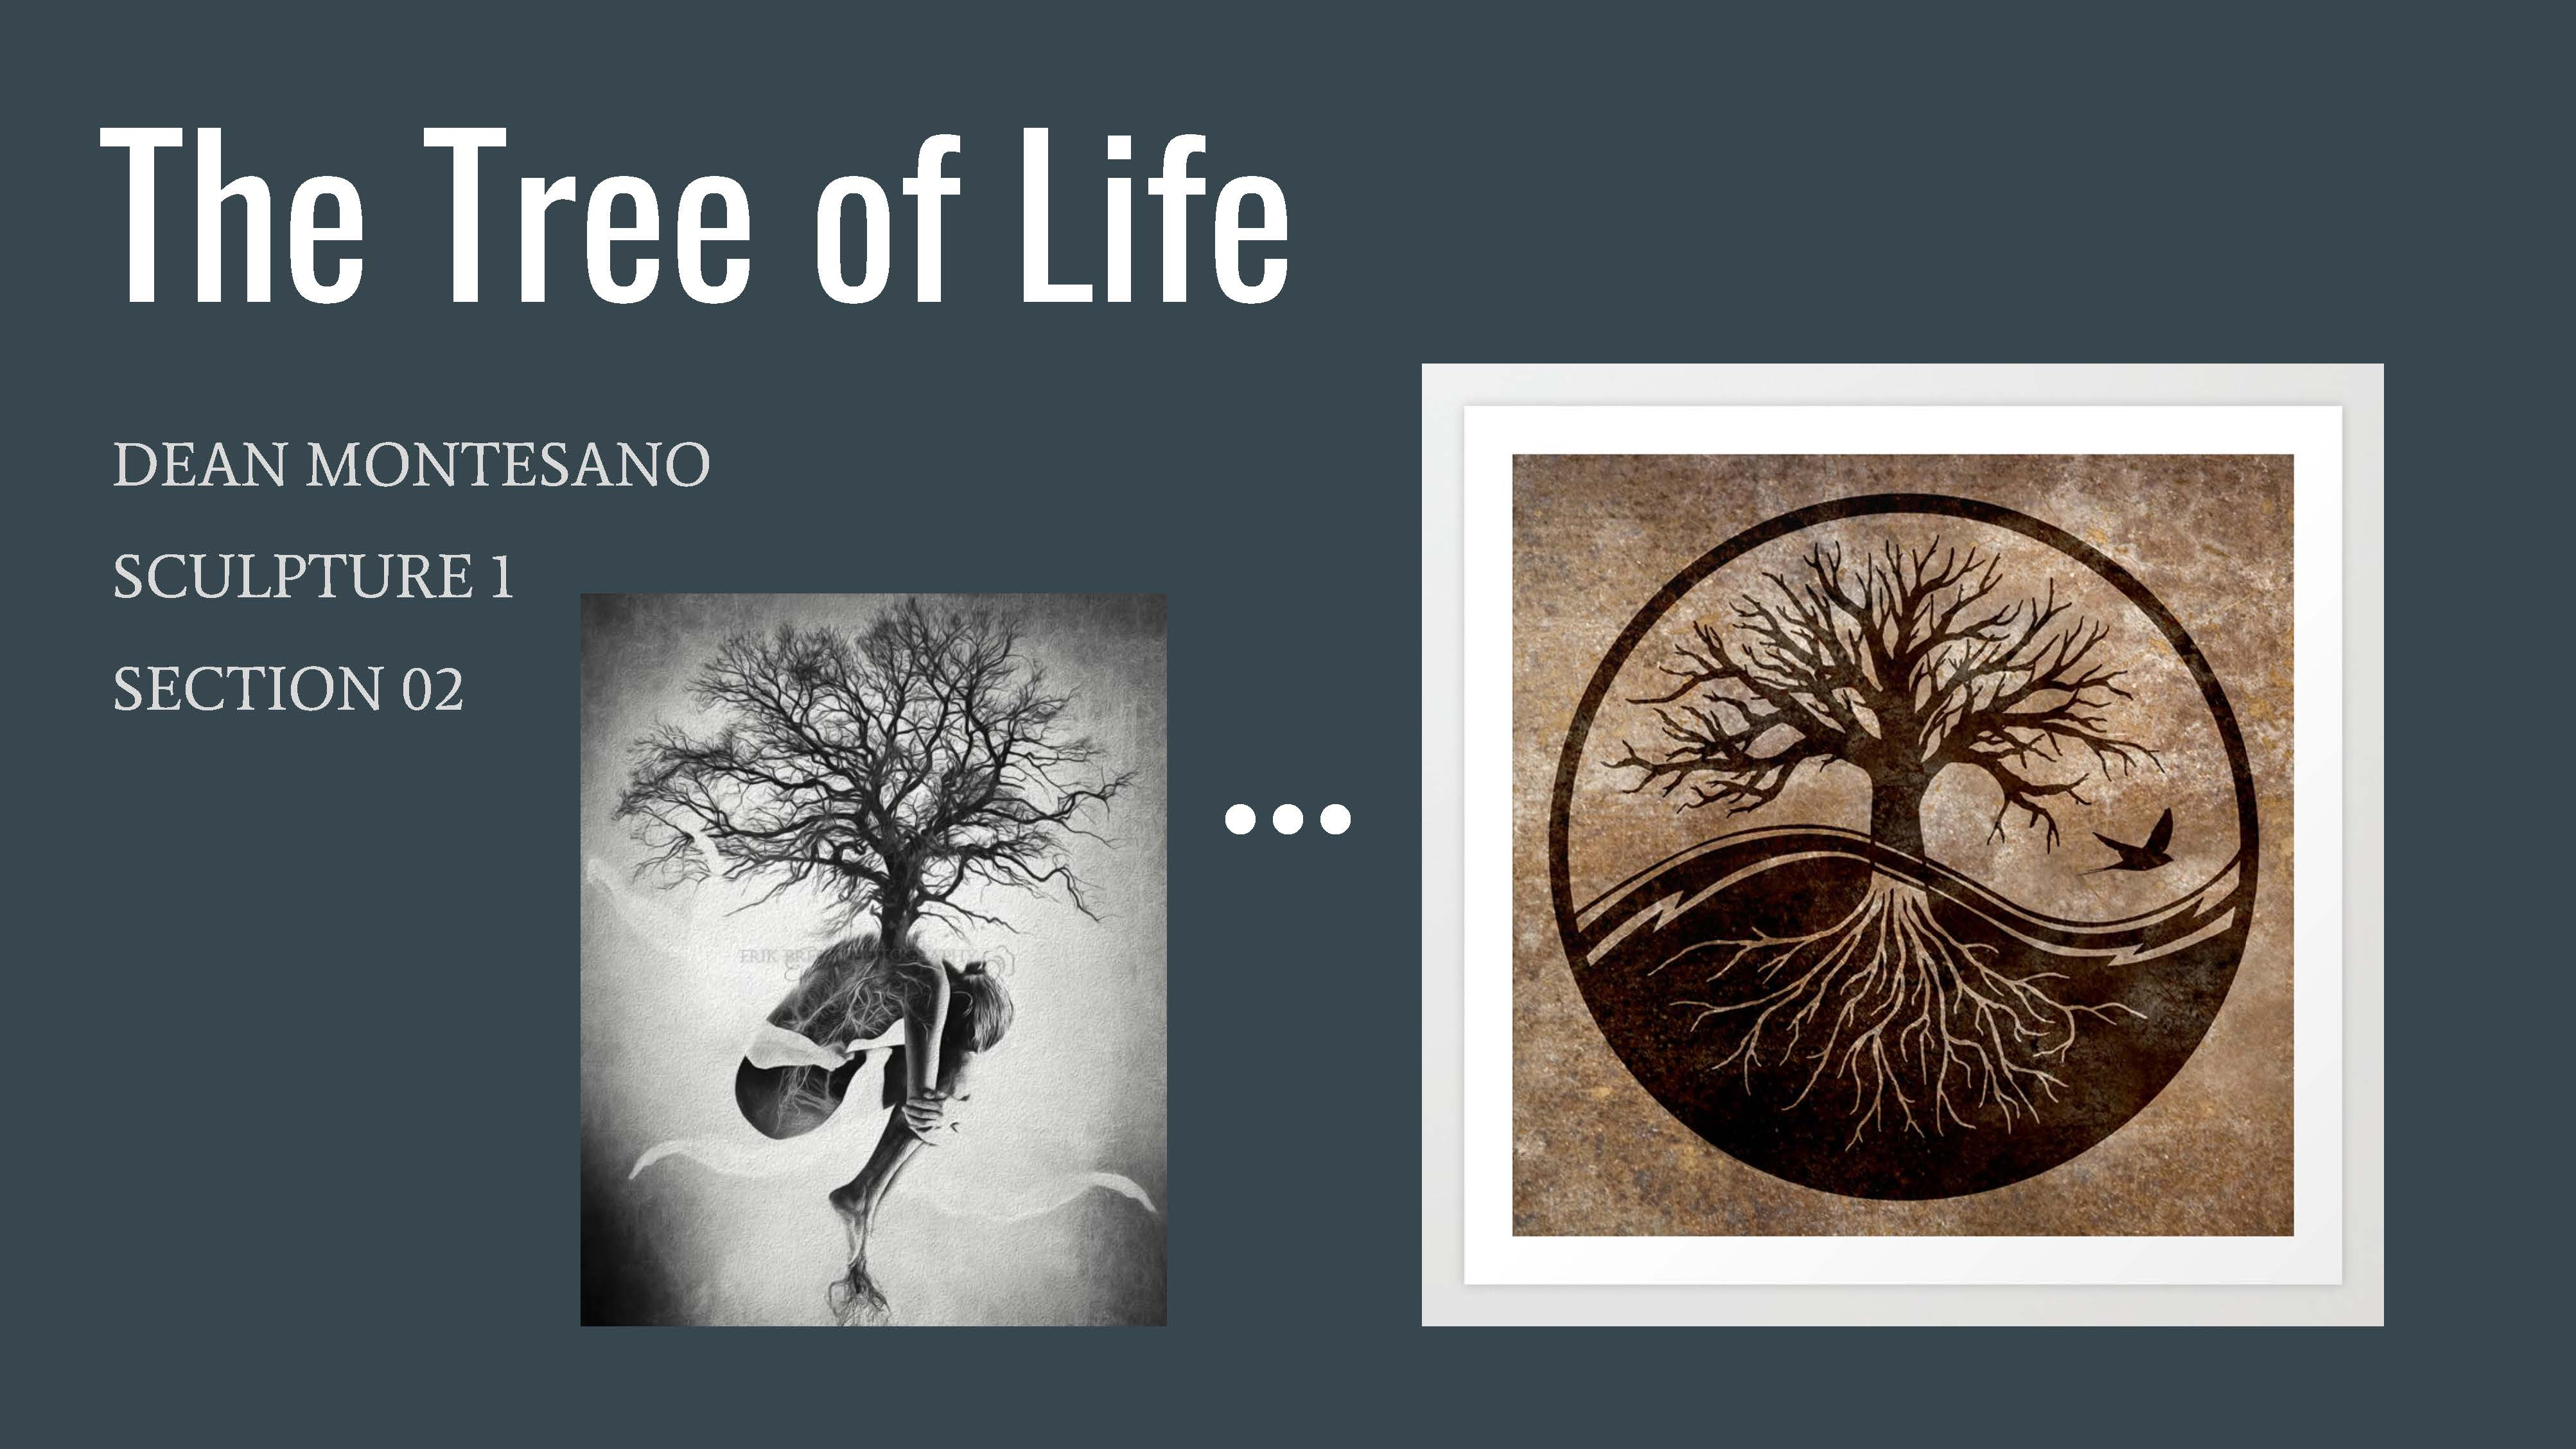 Sculpture 1 project - The tree of life